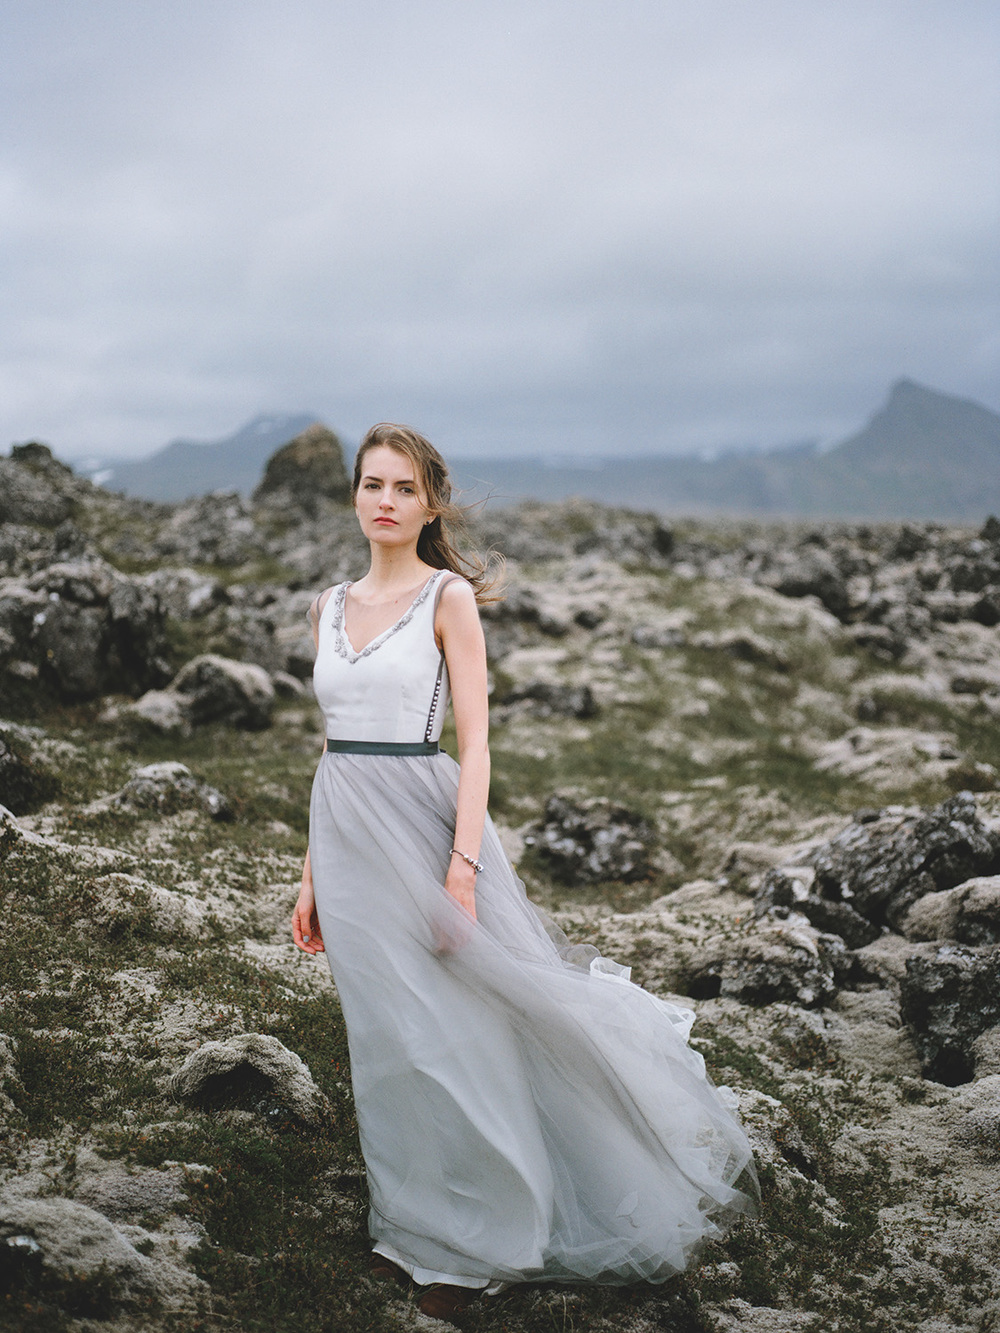 jestcafe.com-wedding_in_iceland64